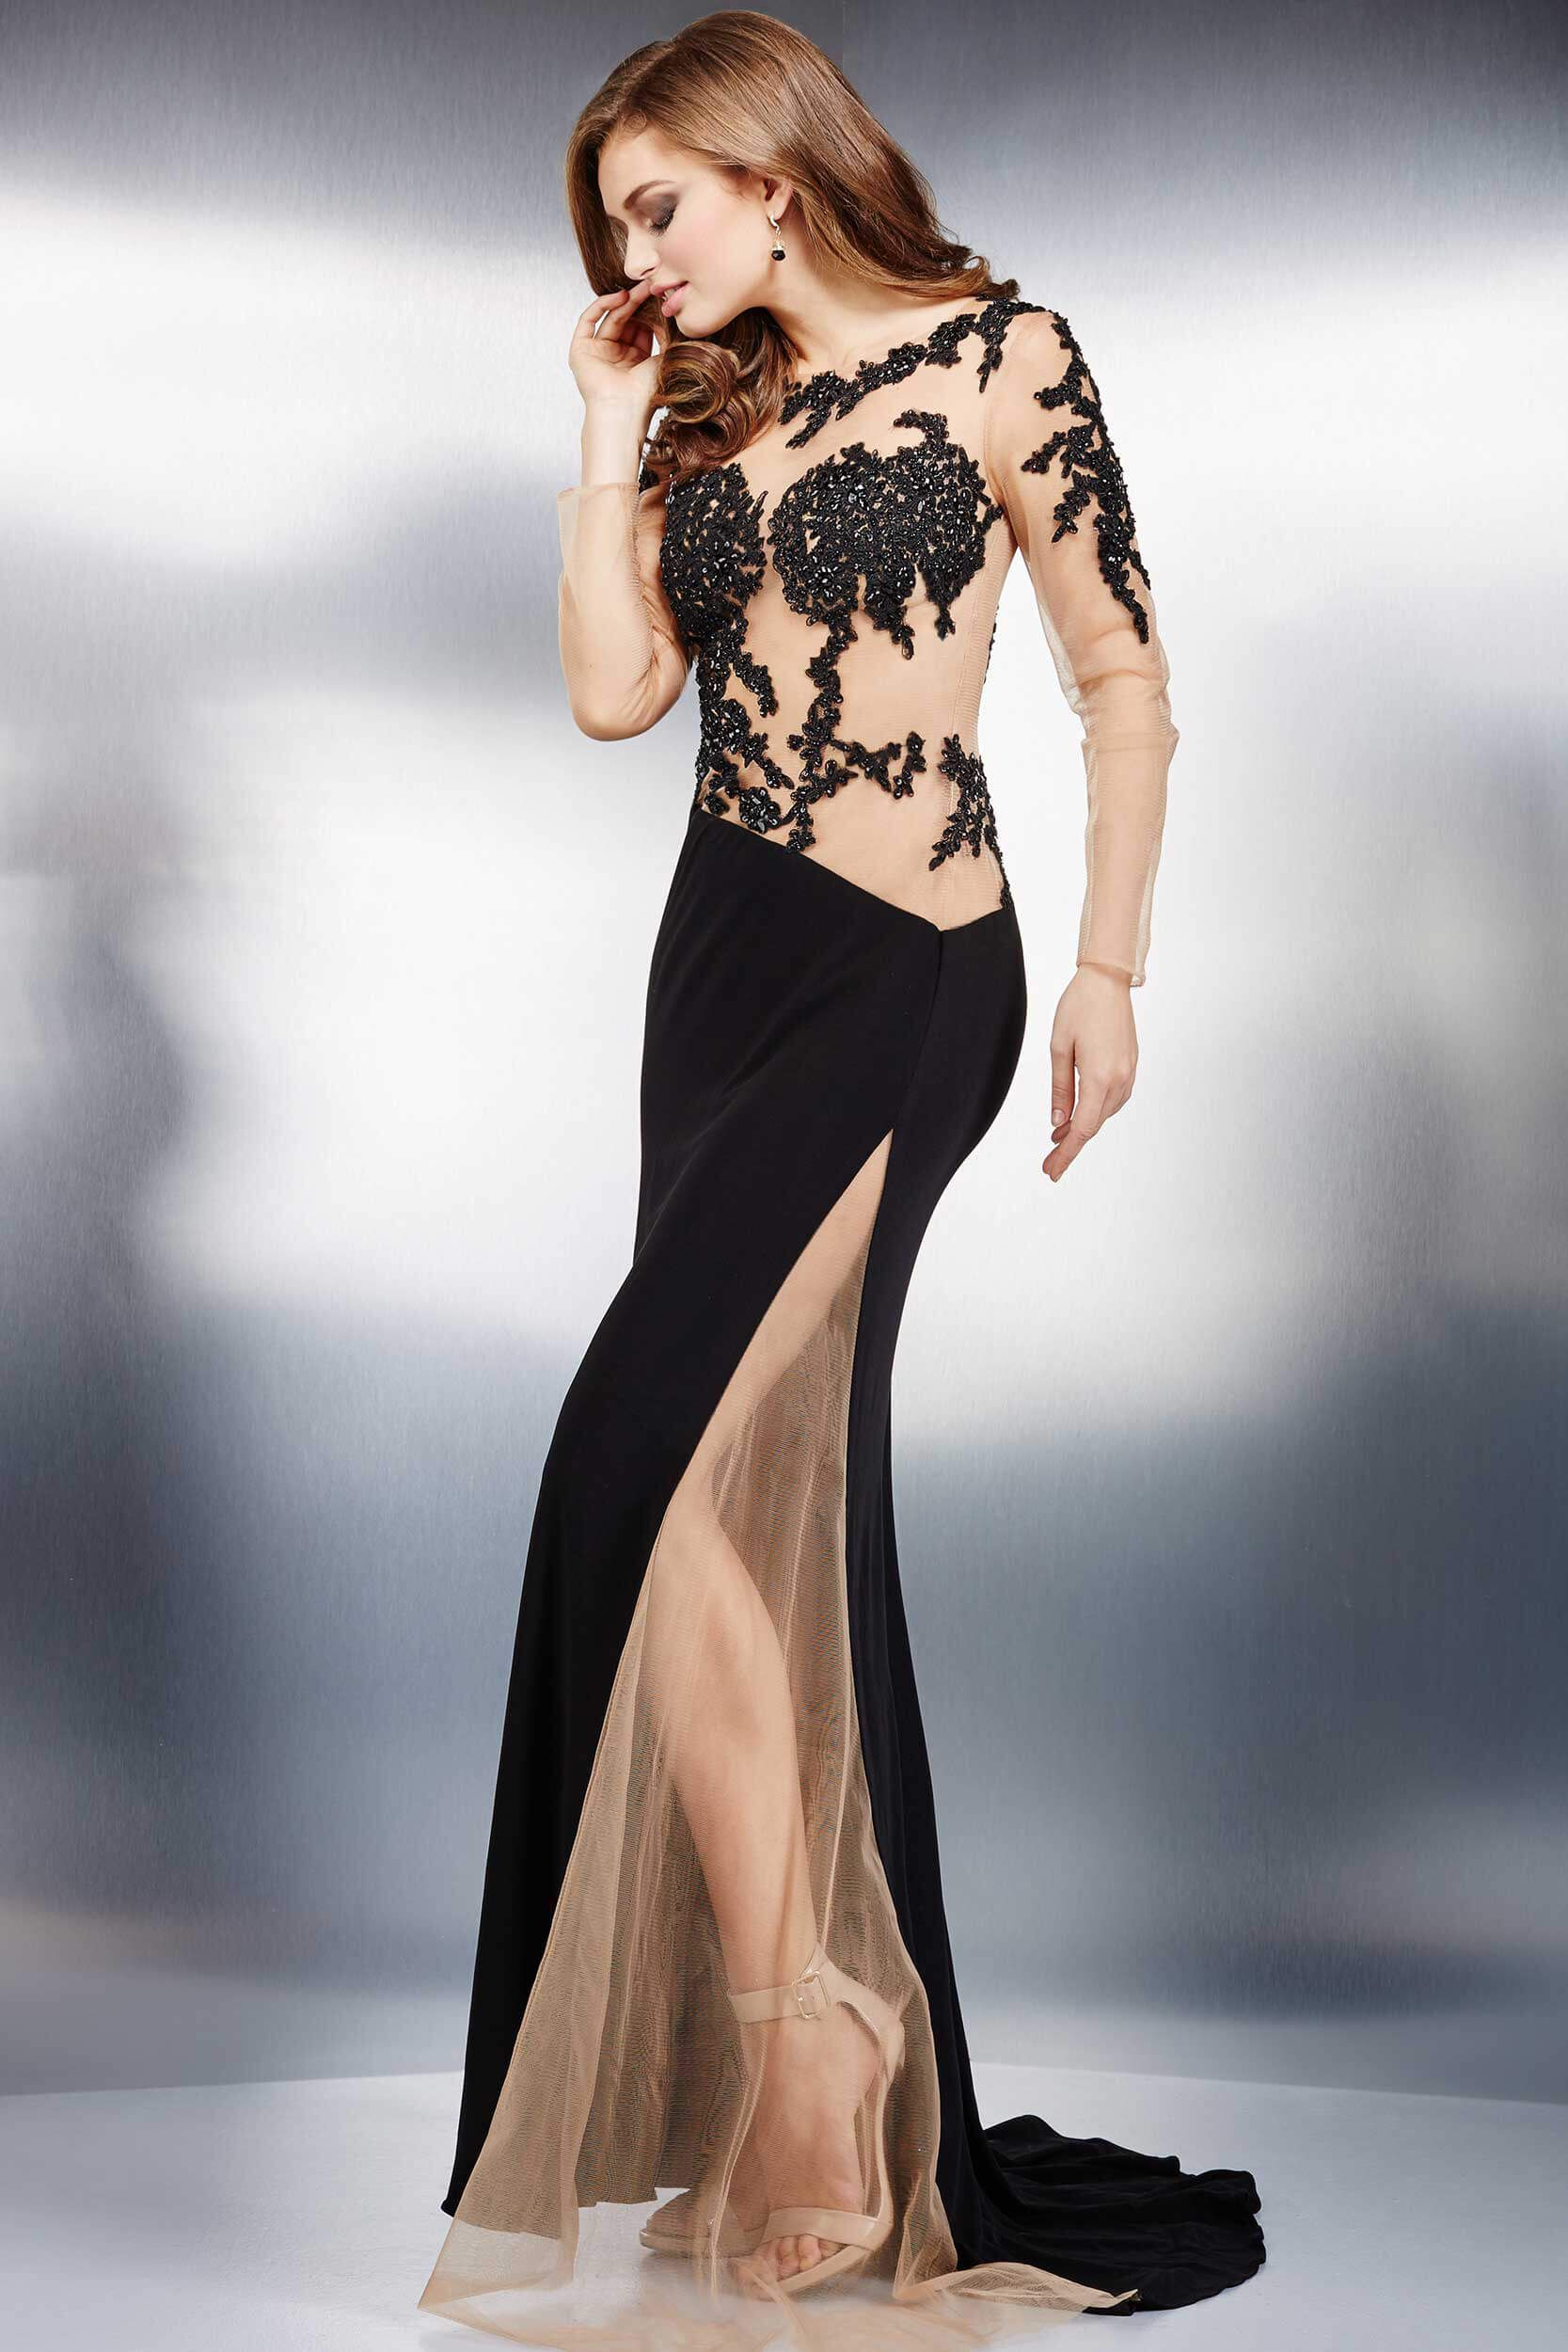 Sleek and sexy in #Jovani 89919 | Posh After 5 | Pinterest